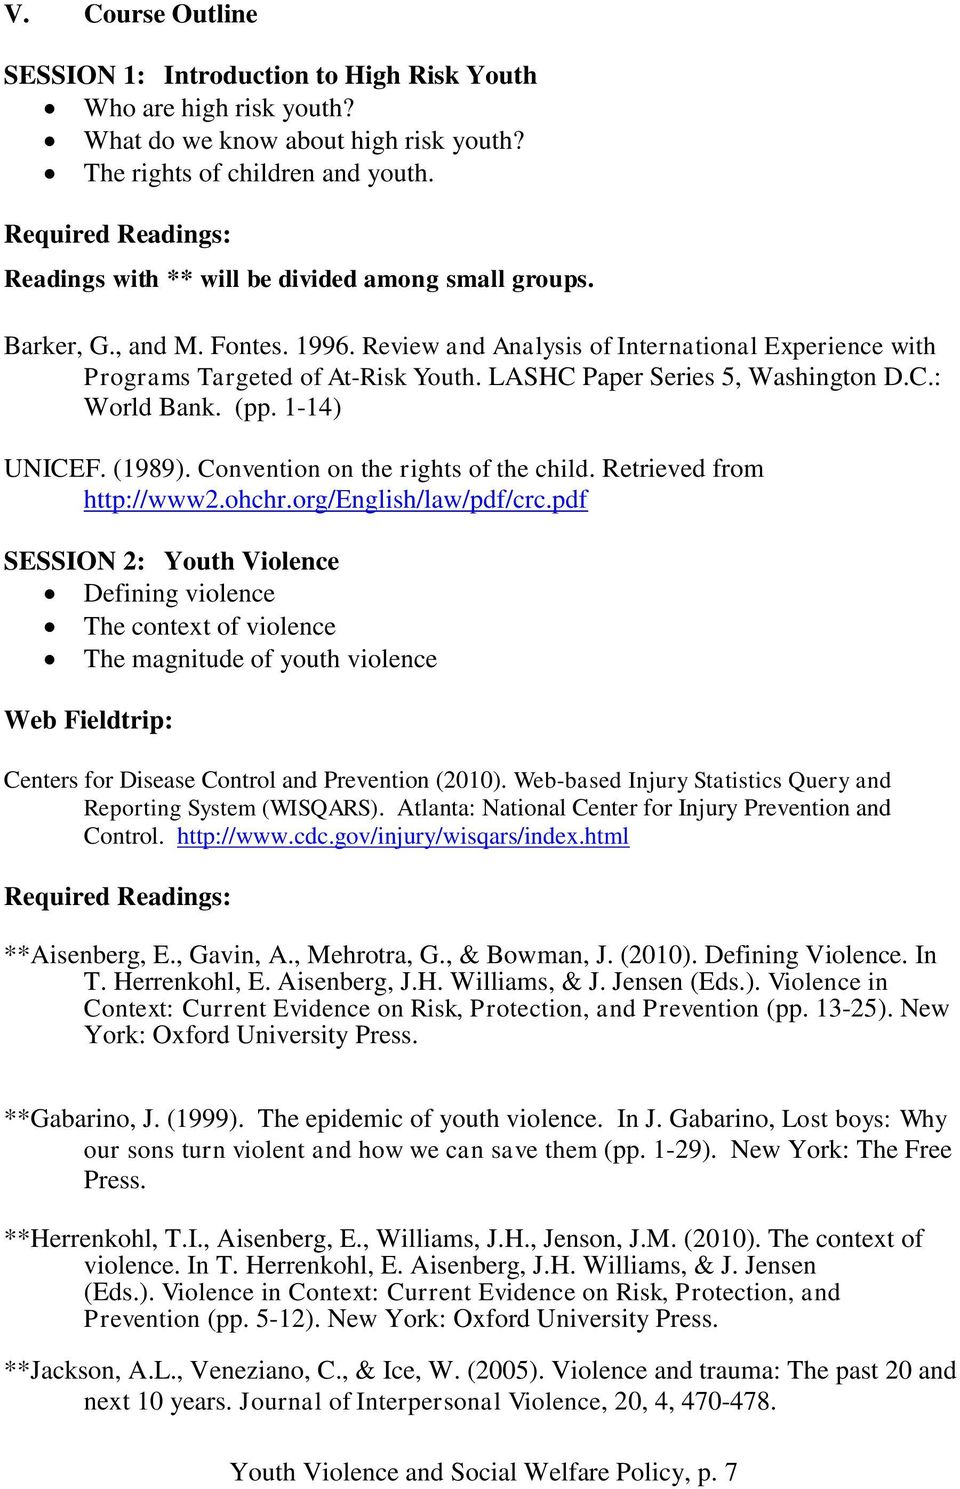 LASHC Paper Series 5, Washington D.C.: World Bank. (pp. 1-14) UNICEF. (1989). Convention on the rights of the child. Retrieved from http://www2.ohchr.org/english/law/pdf/crc.